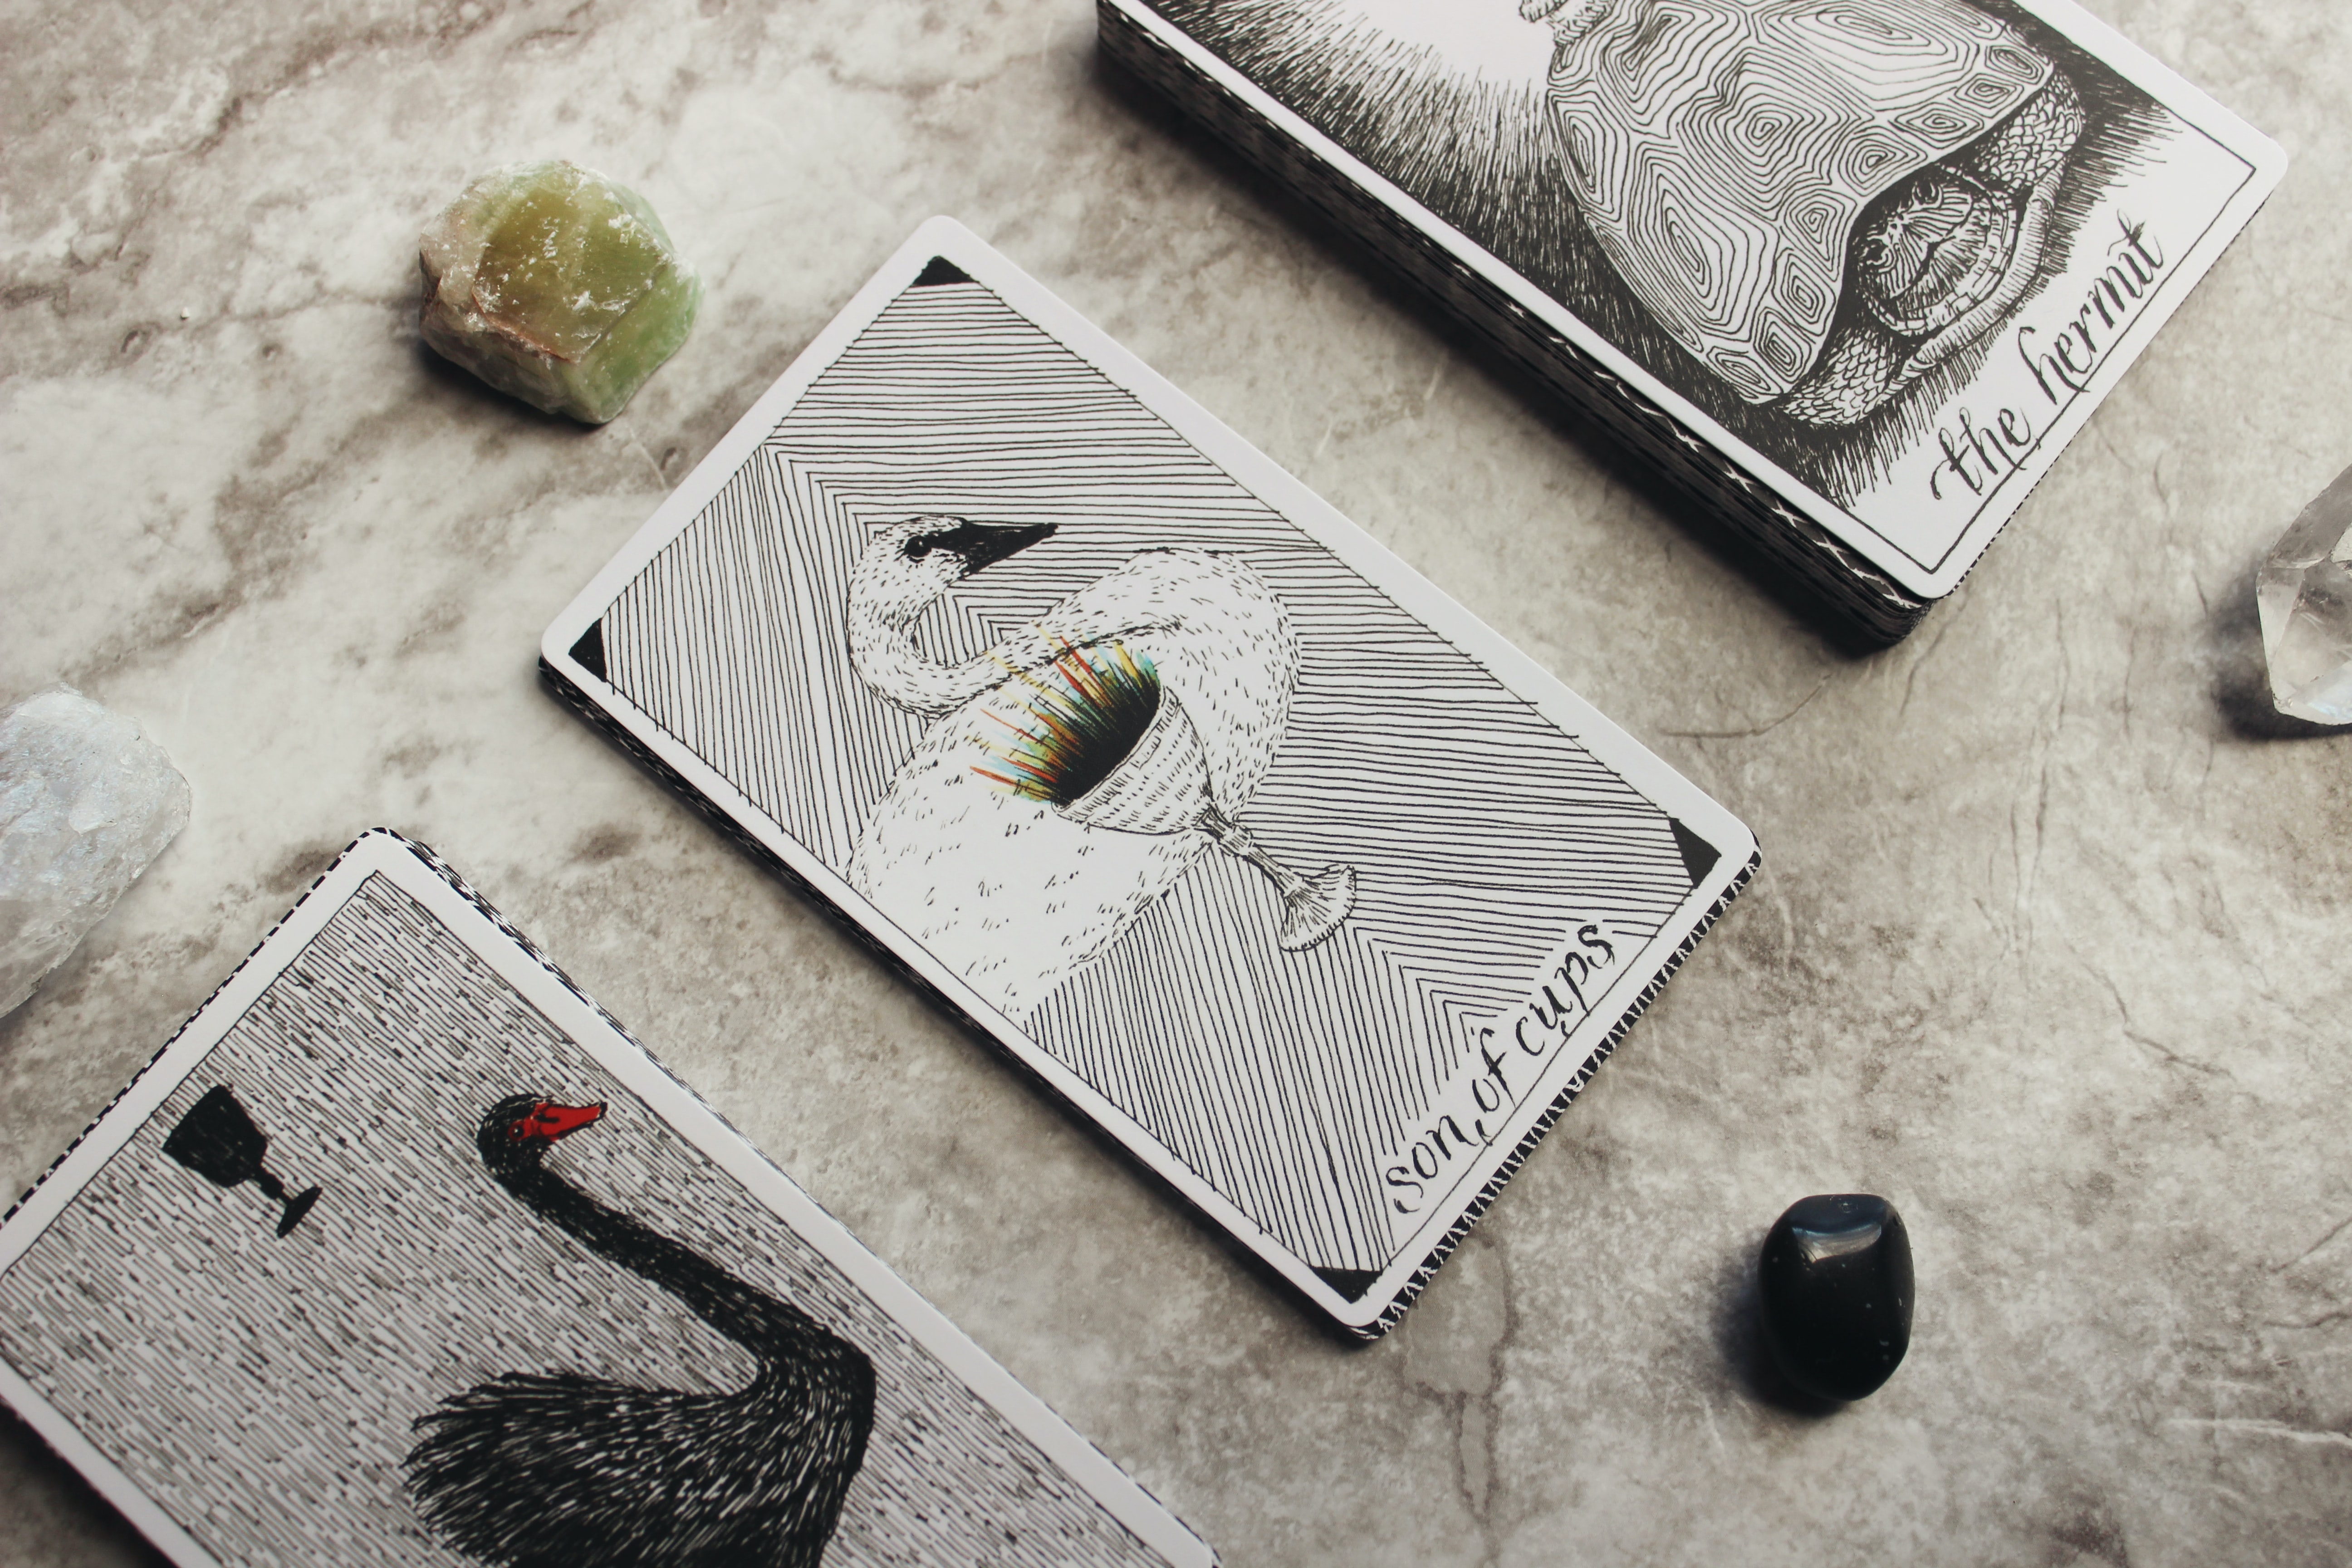 The son of cups and the hermit tarot cards laid on a marble countertop.